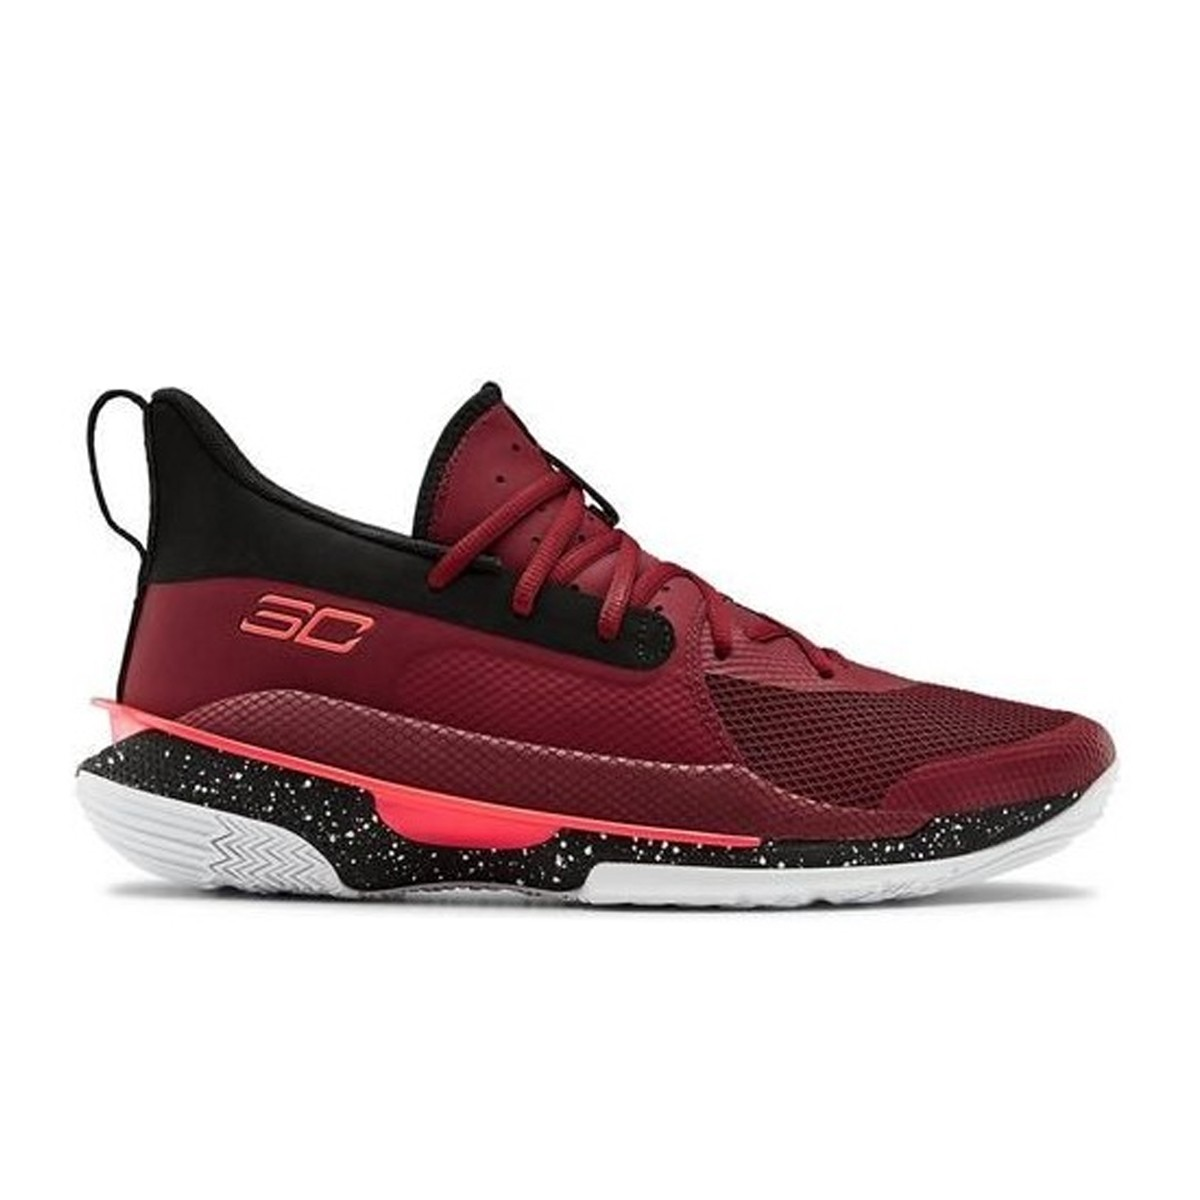 Under Armour Curry 7 'Red Cordova'-3021258-605